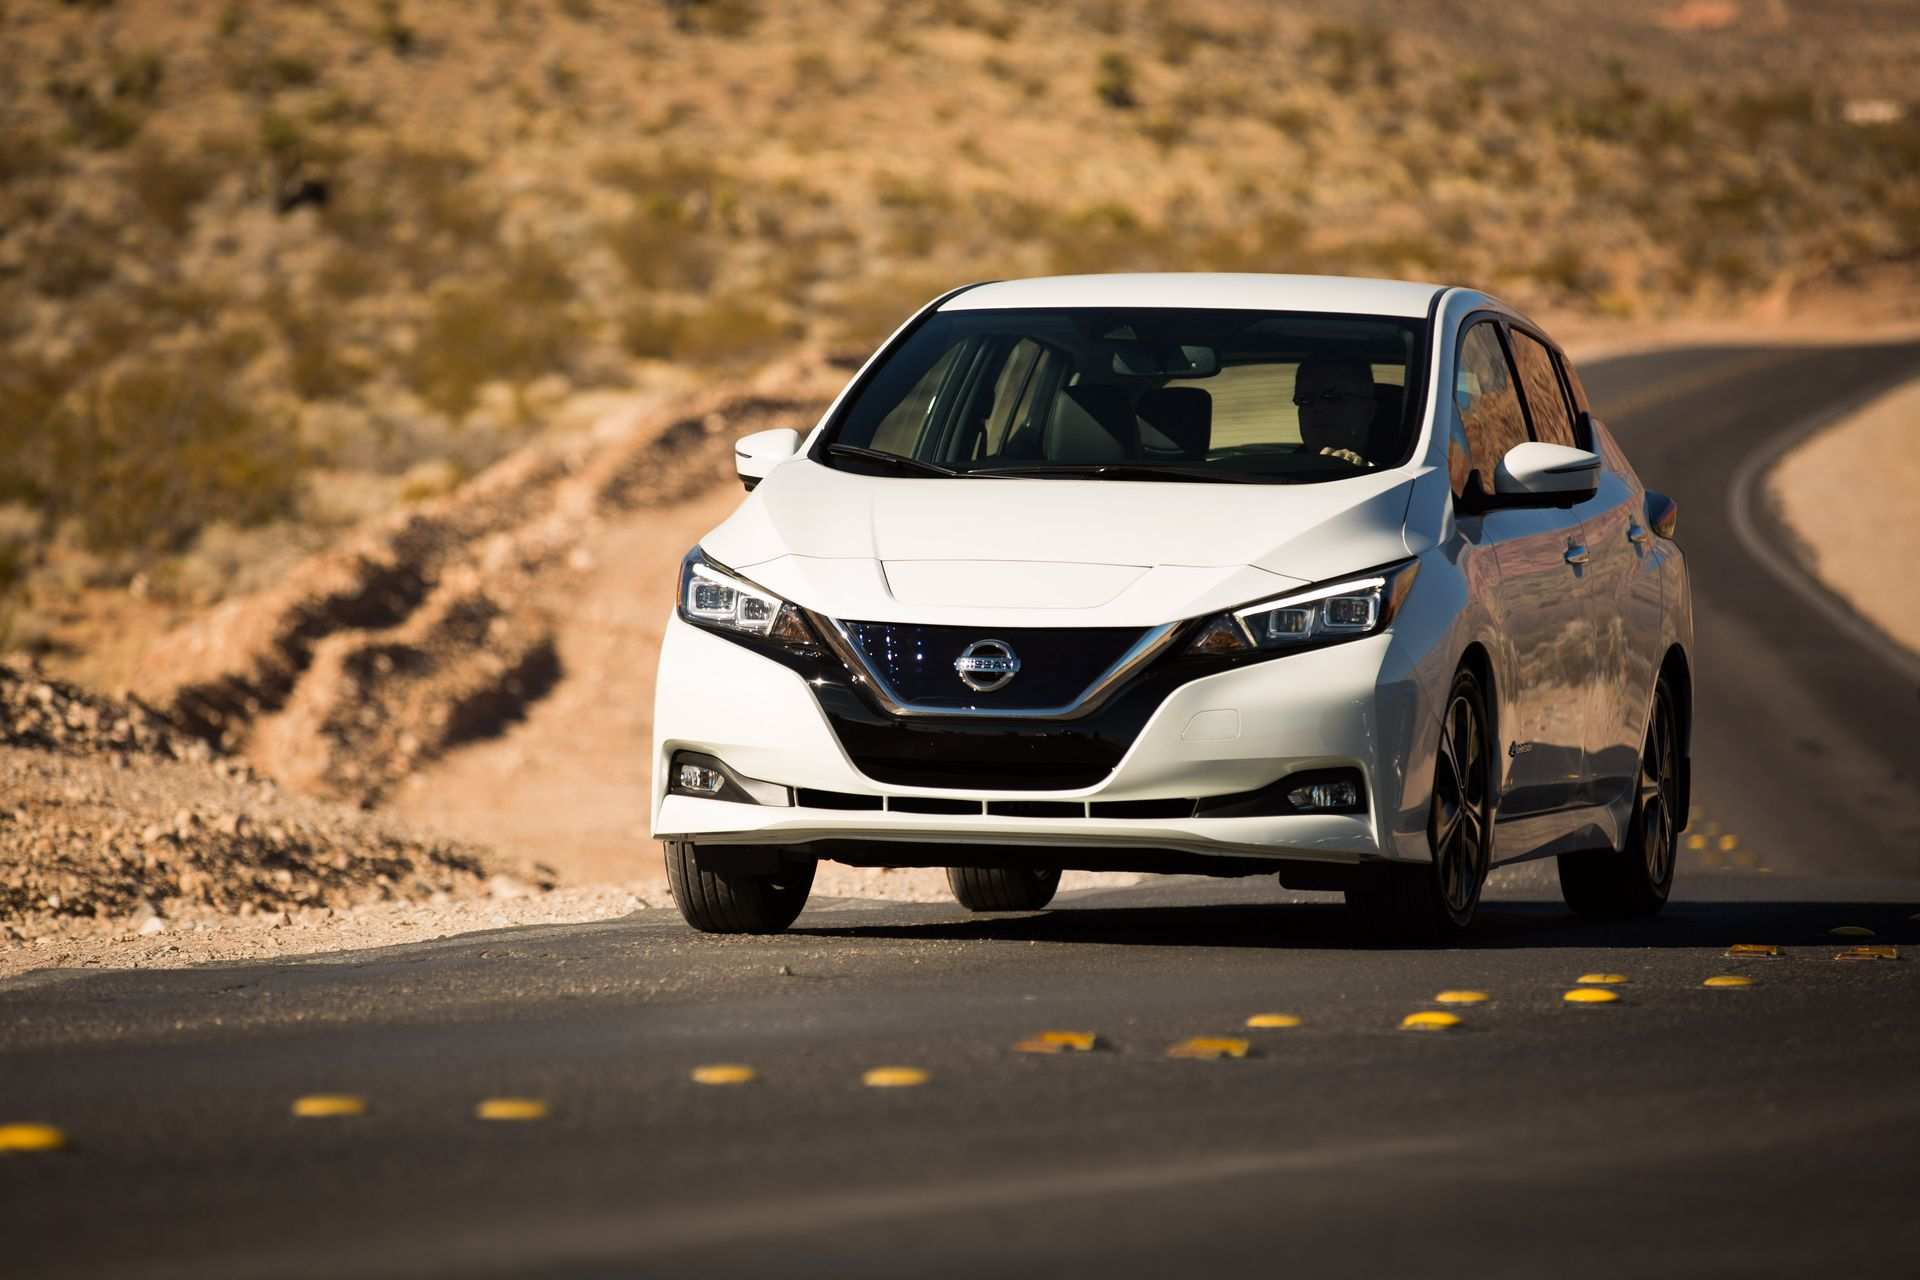 37 New 2020 Nissan Leaf Price Overview by 2020 Nissan Leaf Price